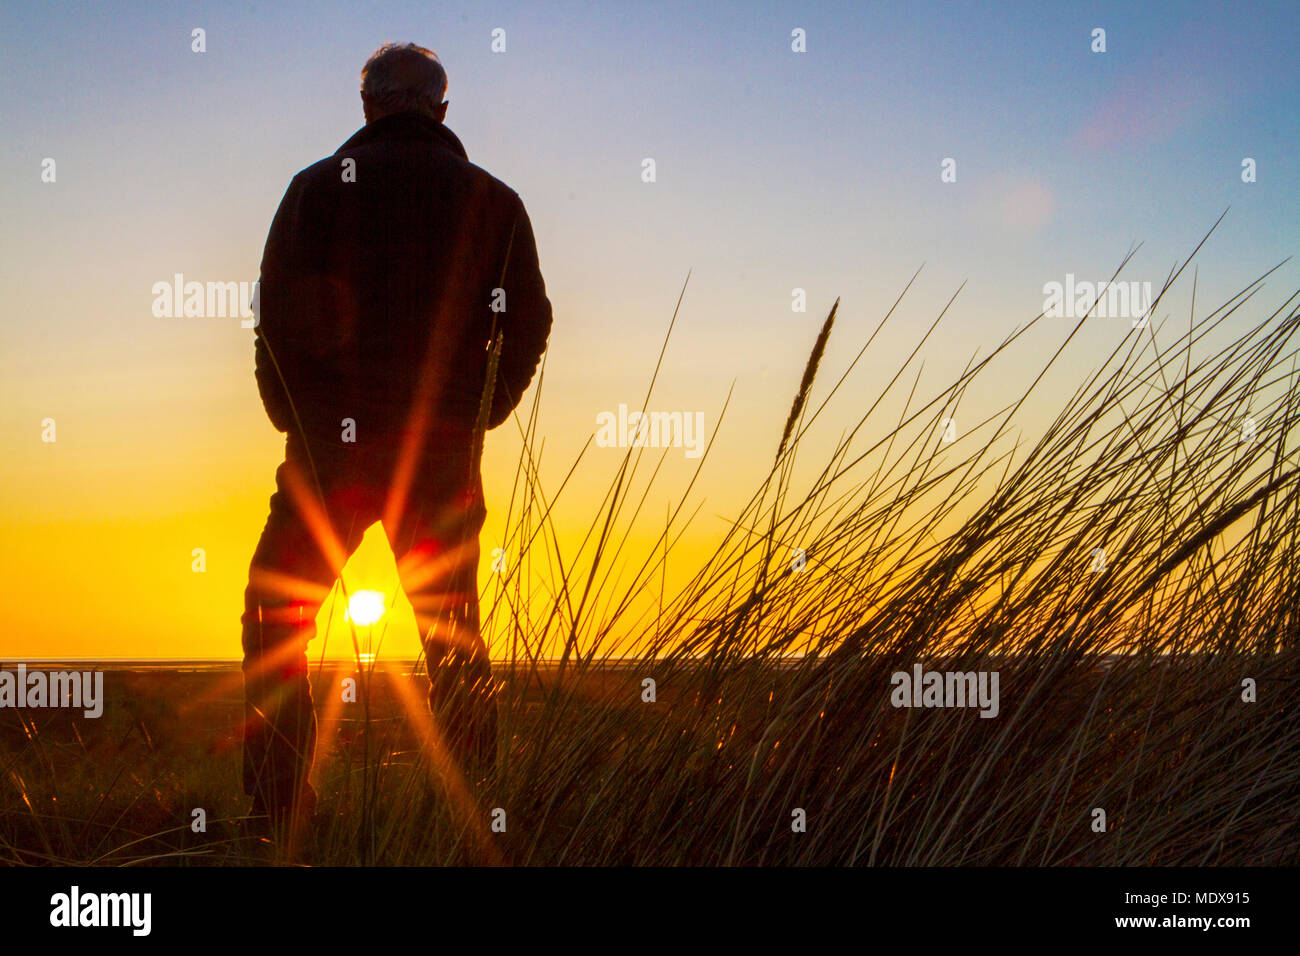 Stunning Sunset, Southport, Merseyside. 20th April 2018. UK Weather. A man stands on the sand dunes watching as the sunset drops into the horizon over Southport beach in Merseyside.  Credit: Cernan Elias/Alamy Live News Stock Photo